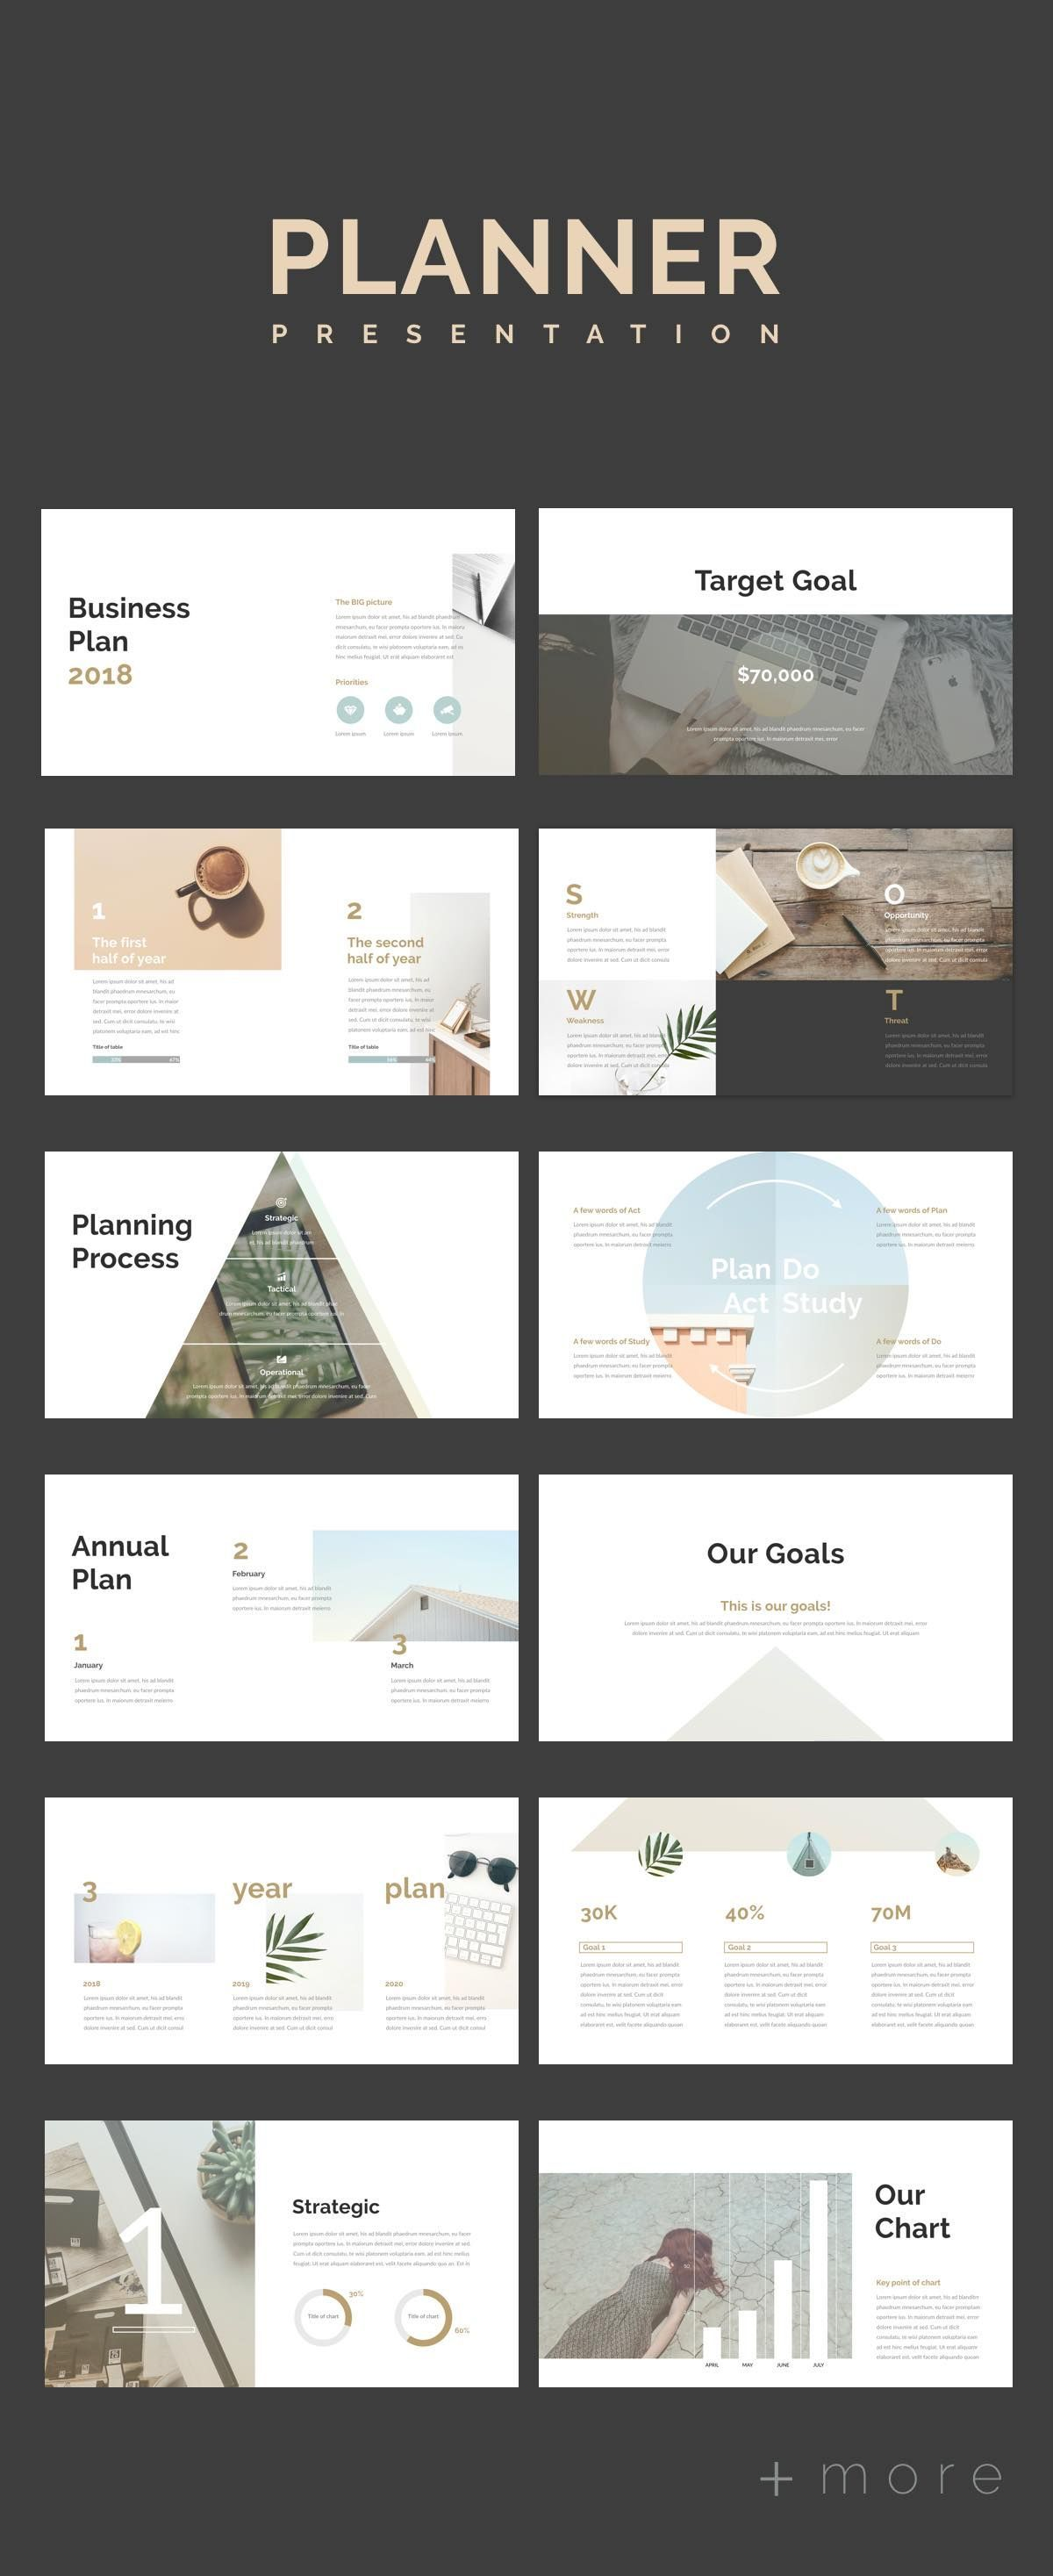 Pin By On Pinterest Presentation Templates